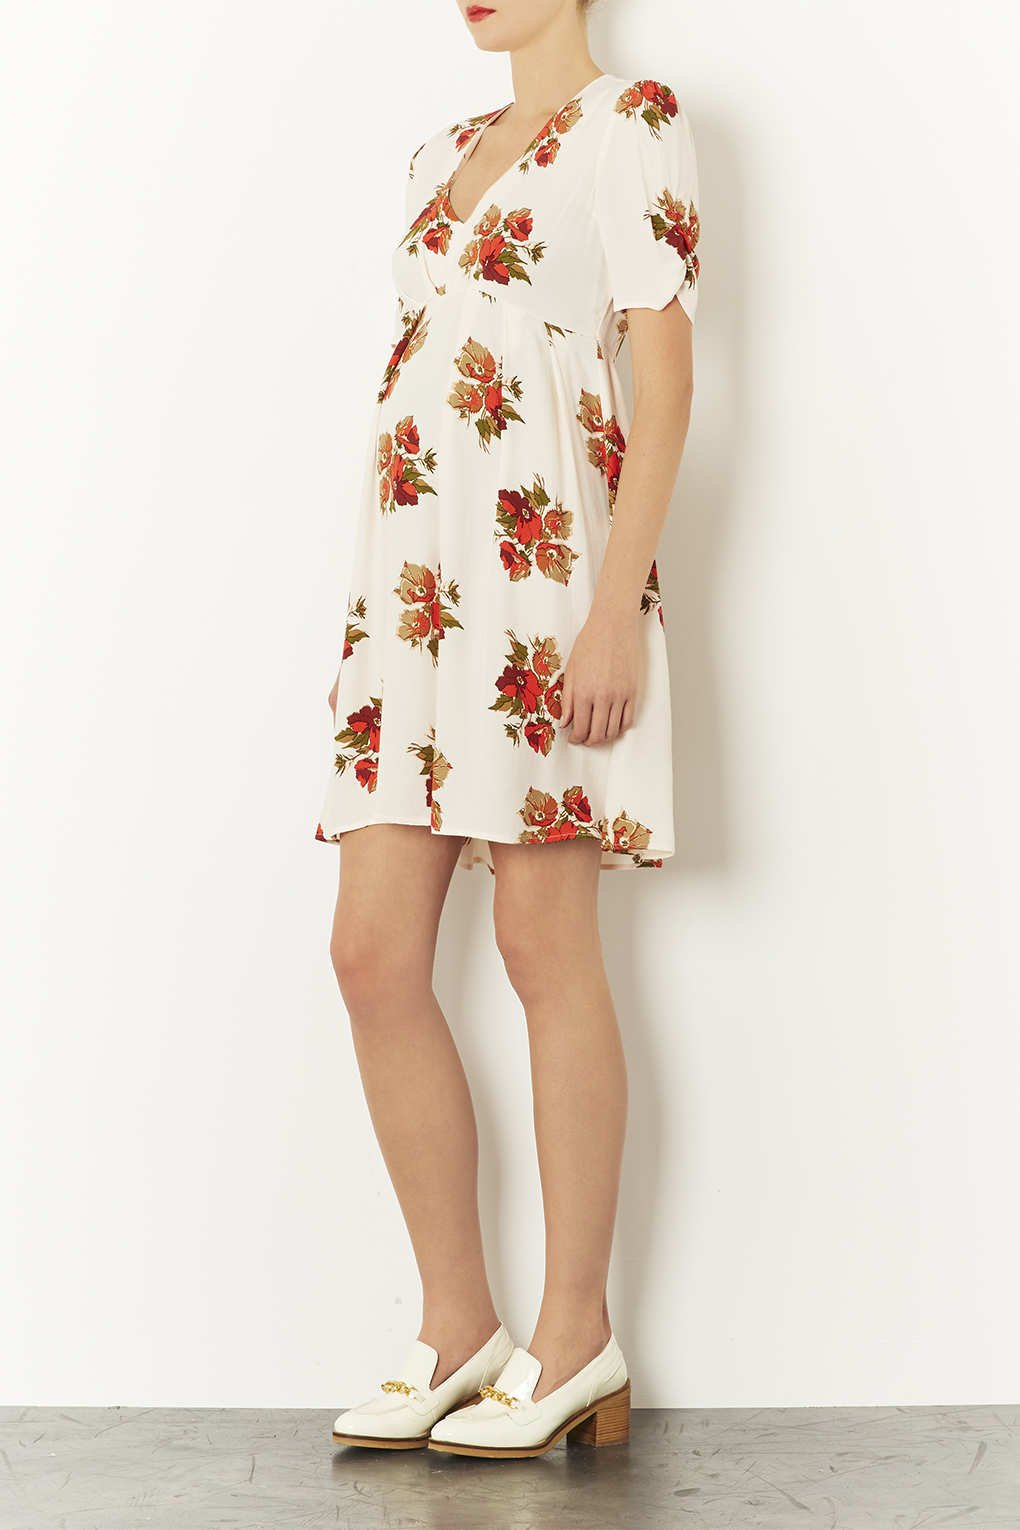 bf3fbc9423064 TOPSHOP Maternity Autumn Floral Dress in Natural - Lyst